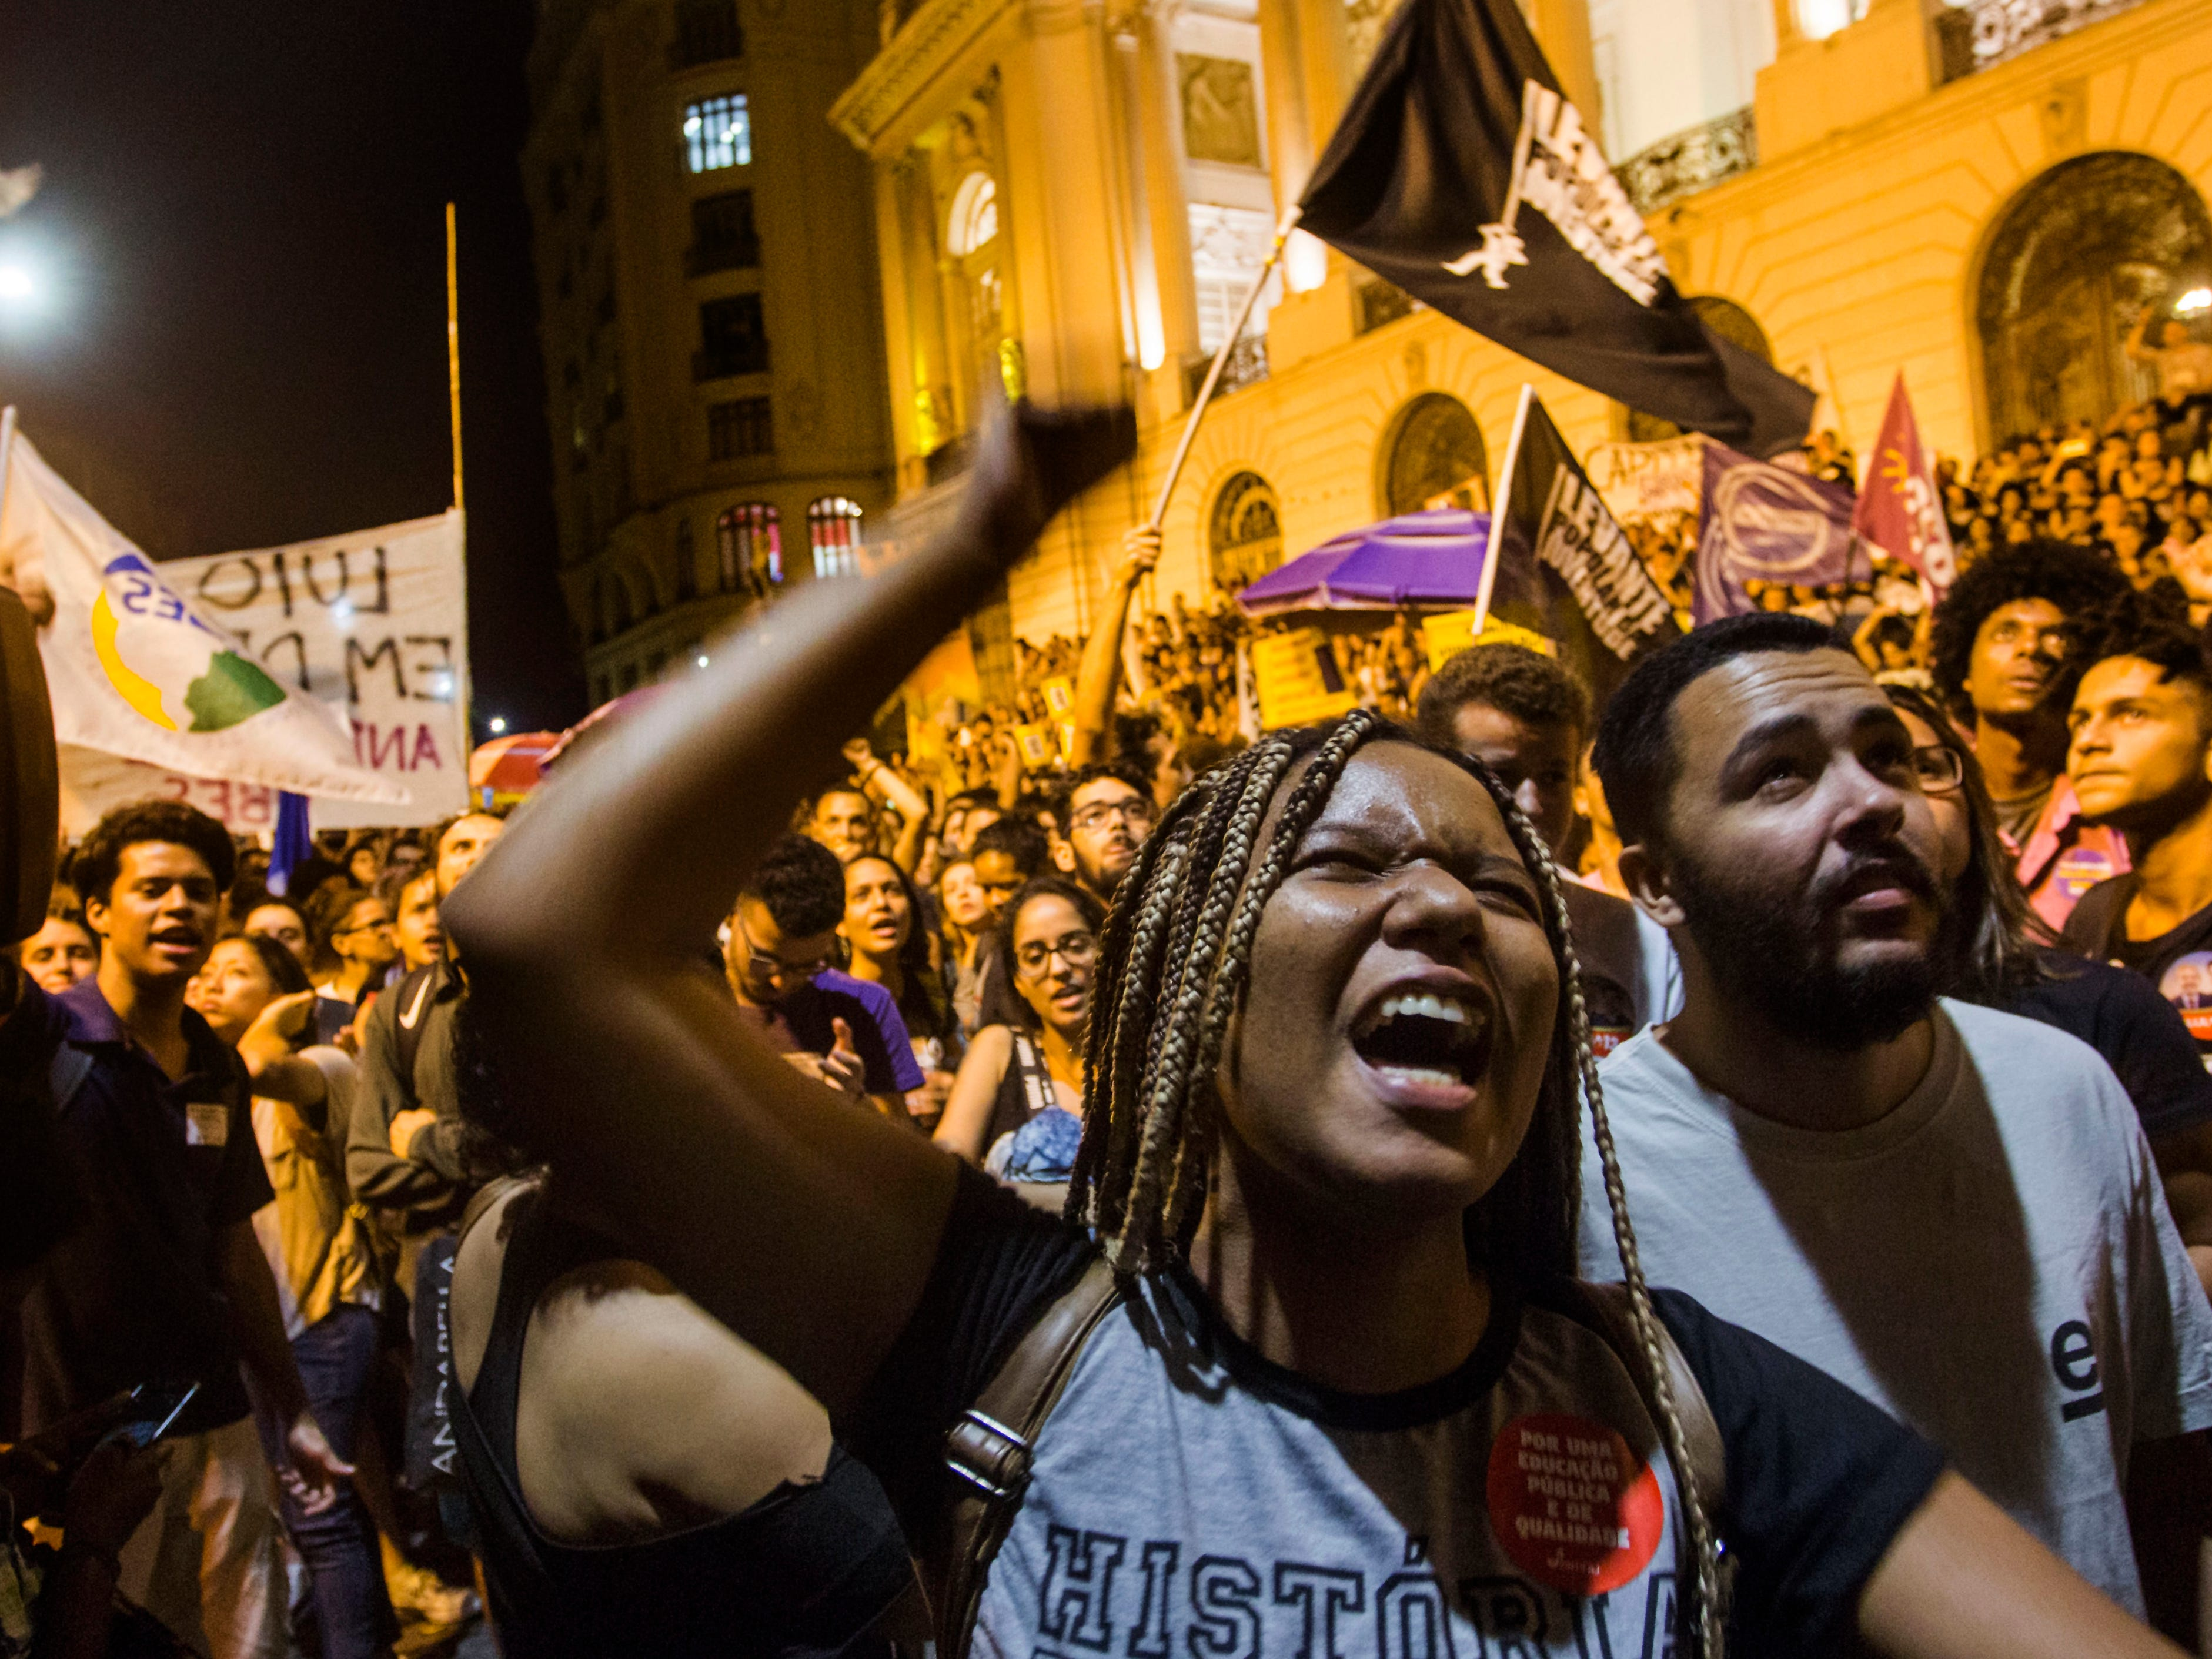 A woman shouts slogans during a protest against the Brazilian government on September 3, 2018, in Rio de Janeiro following a massive fire that ripped through Rio de Janeiro's treasured National Museum.